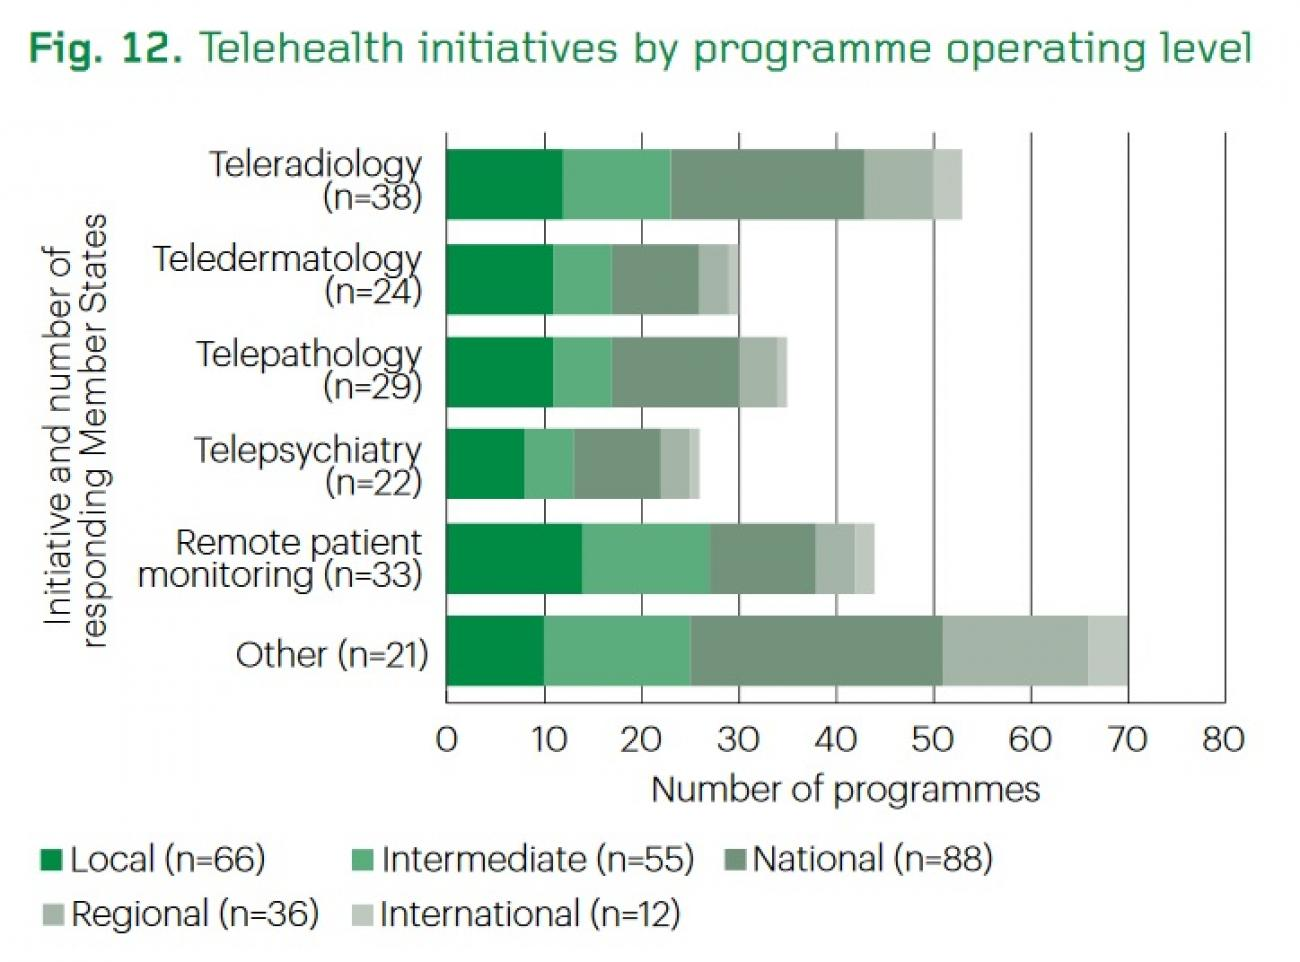 Telehealth_initiatives_by_programme_operating_level_(WHO_2015)